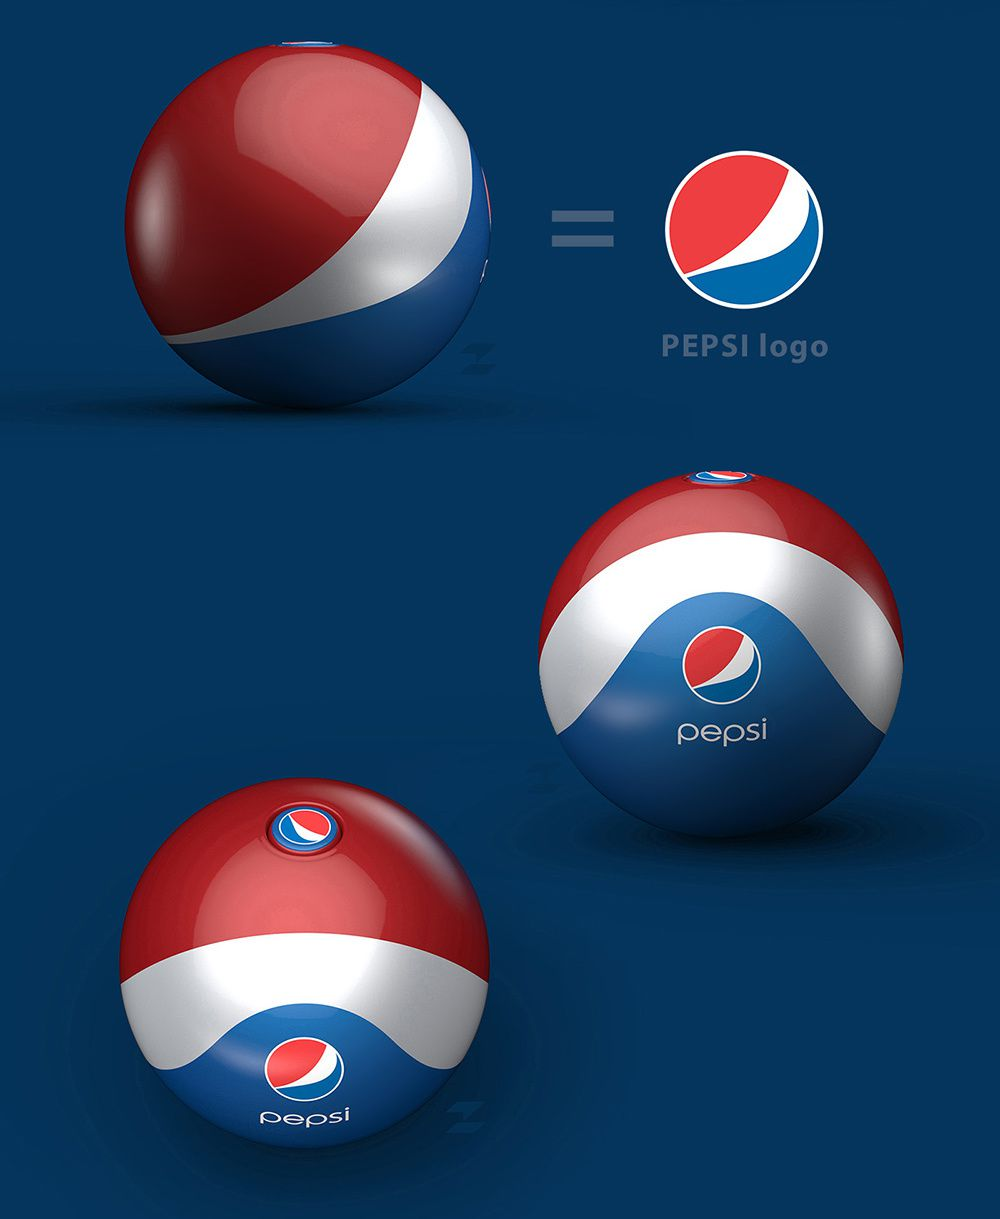 Pepsi Rubber Ball / Bottle (soda) | Design (concept) : Tomislav Zvonaric, Zagreb, Croatie (avril 2016)